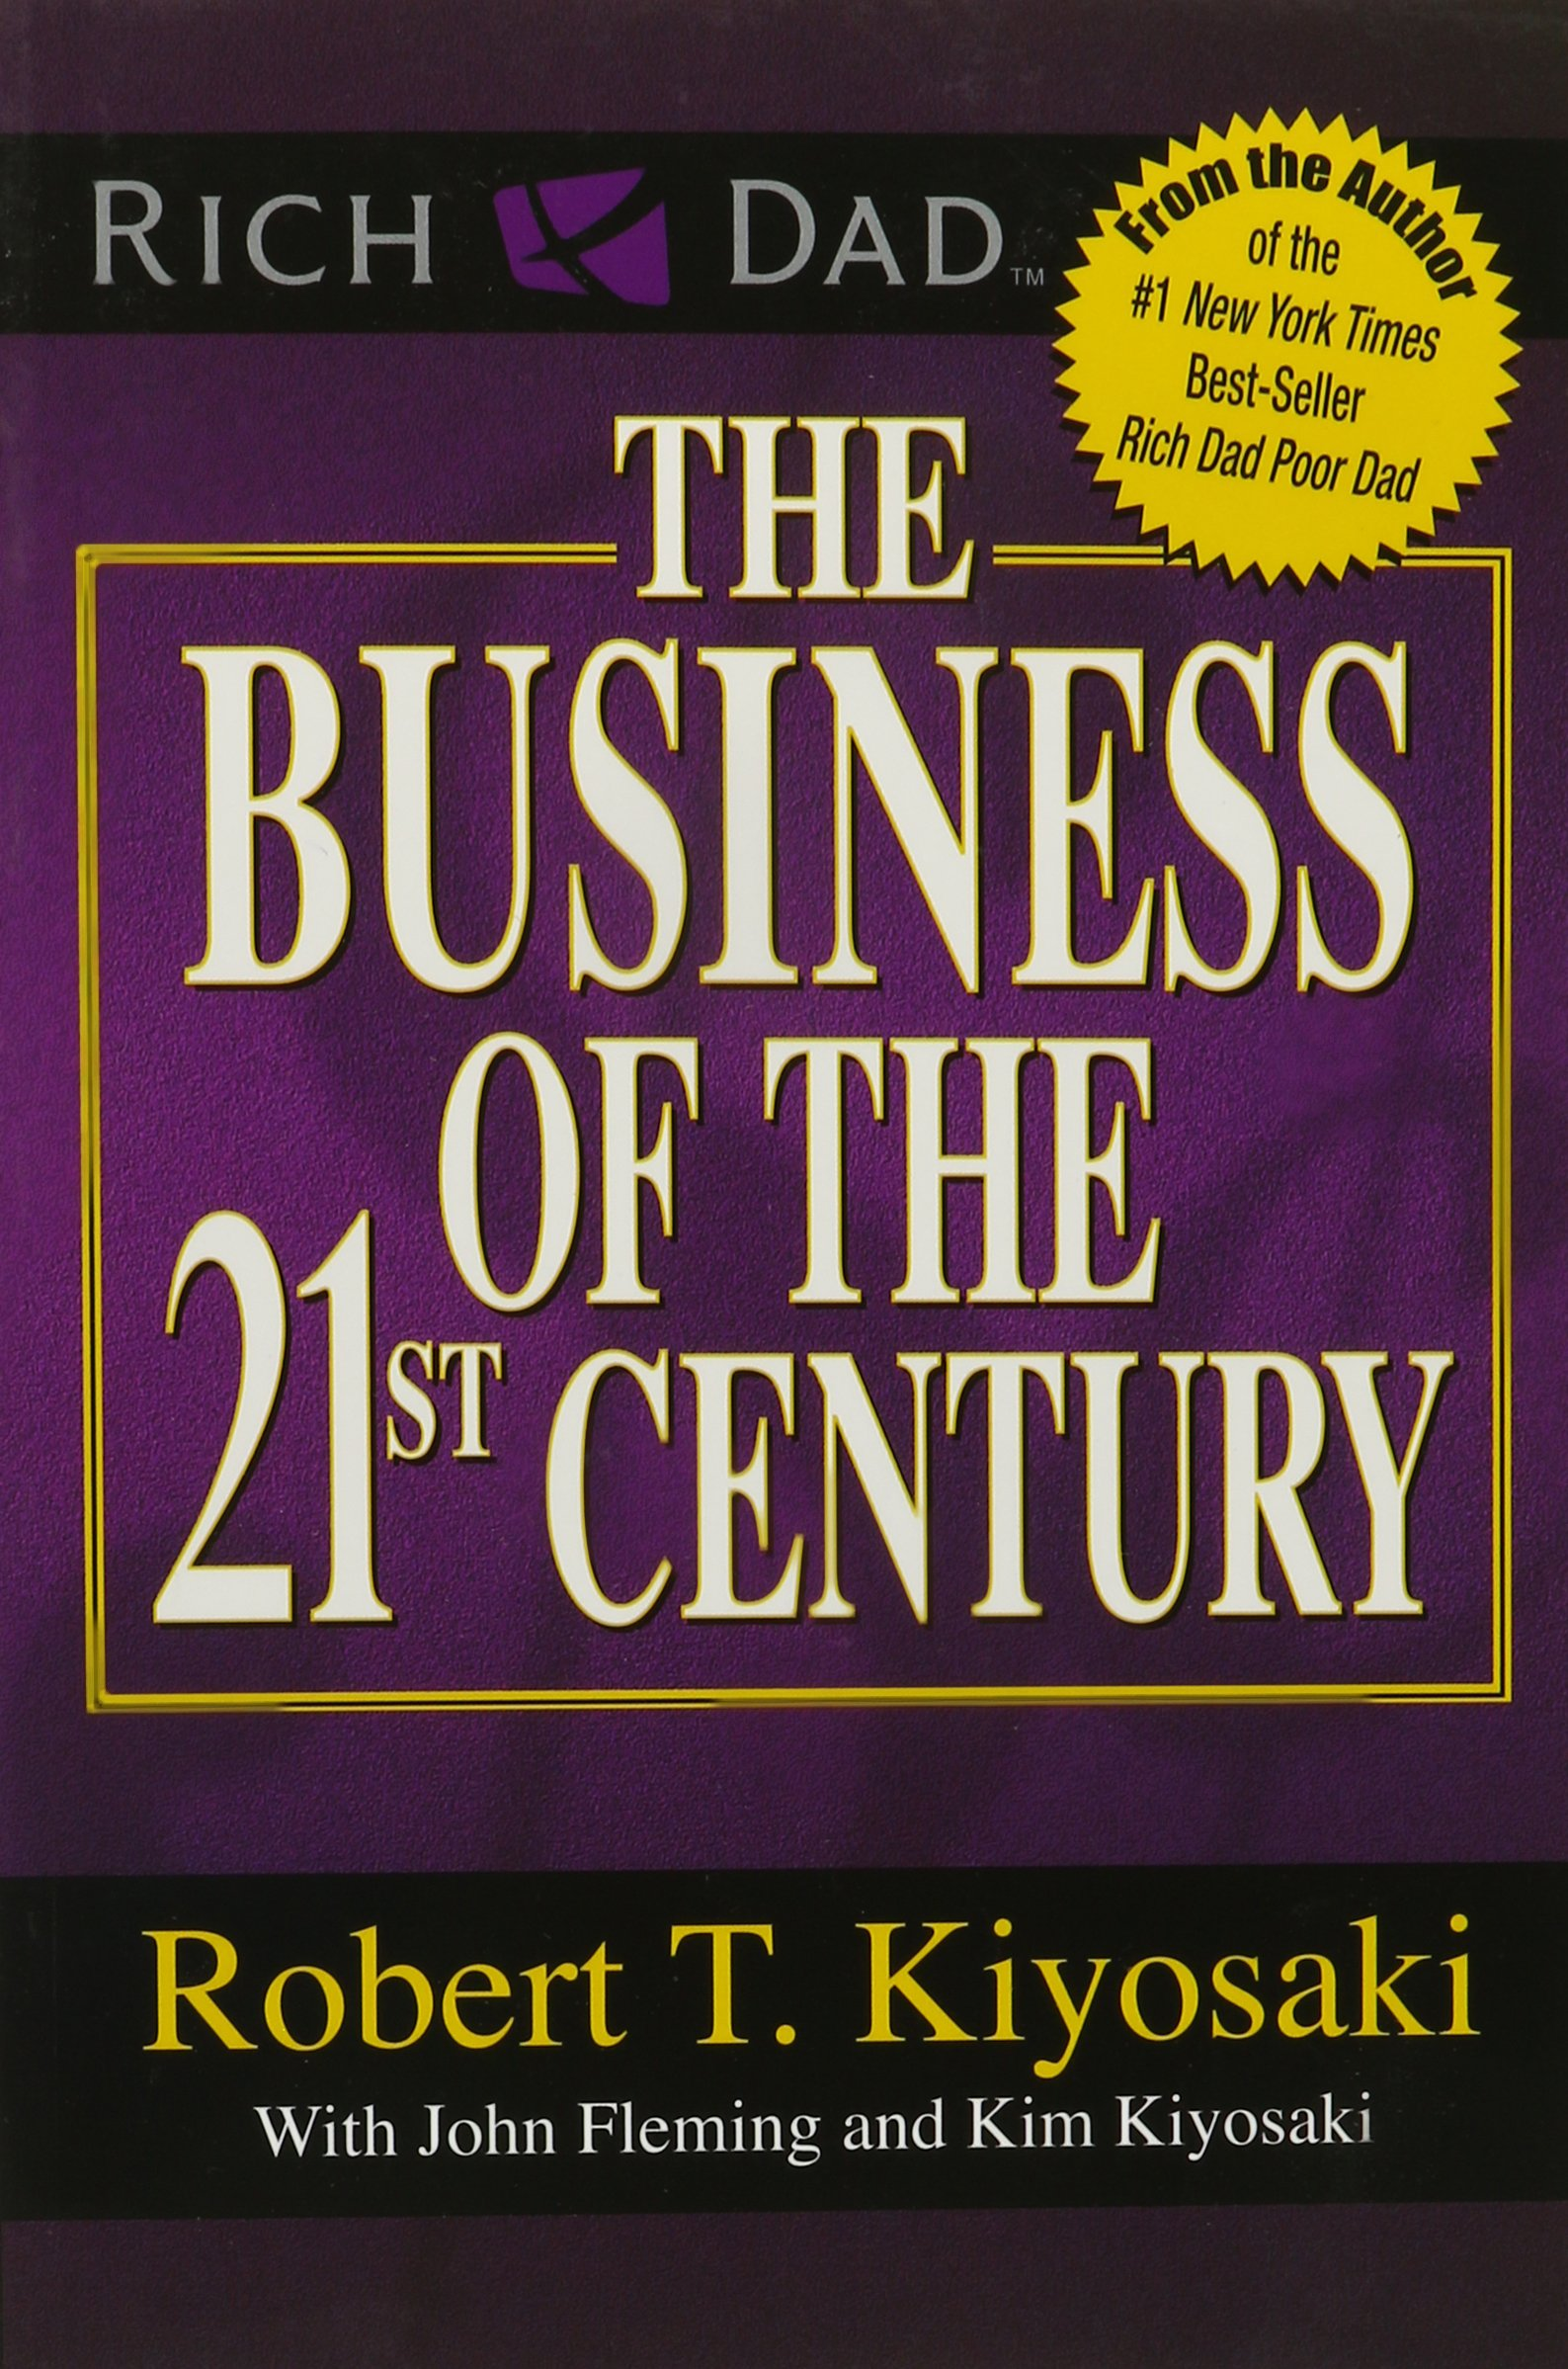 The Business of the 21st Century - Robert Kiyosaki Image